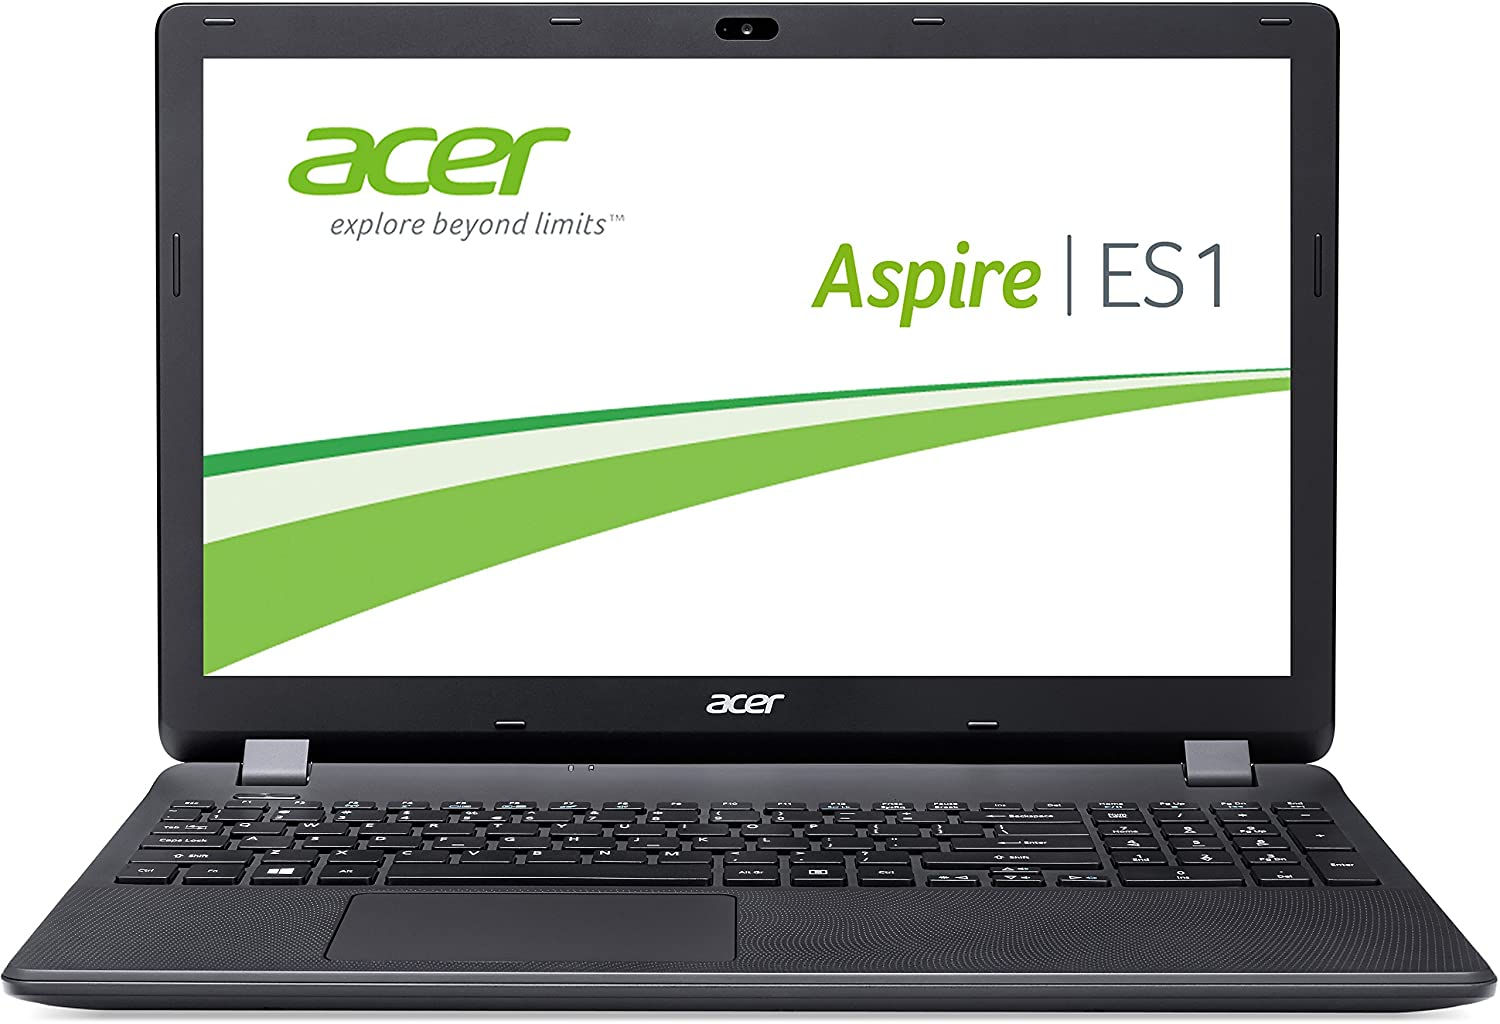 Acer Aspire ES1-512-C1WM - Ordenador portátil (Portátil, DVD Super Multi DL, Touchpad, Windows 8.1 , Ión de Litio, 64-bit), teclada QWERTZ: Amazon.es: ...